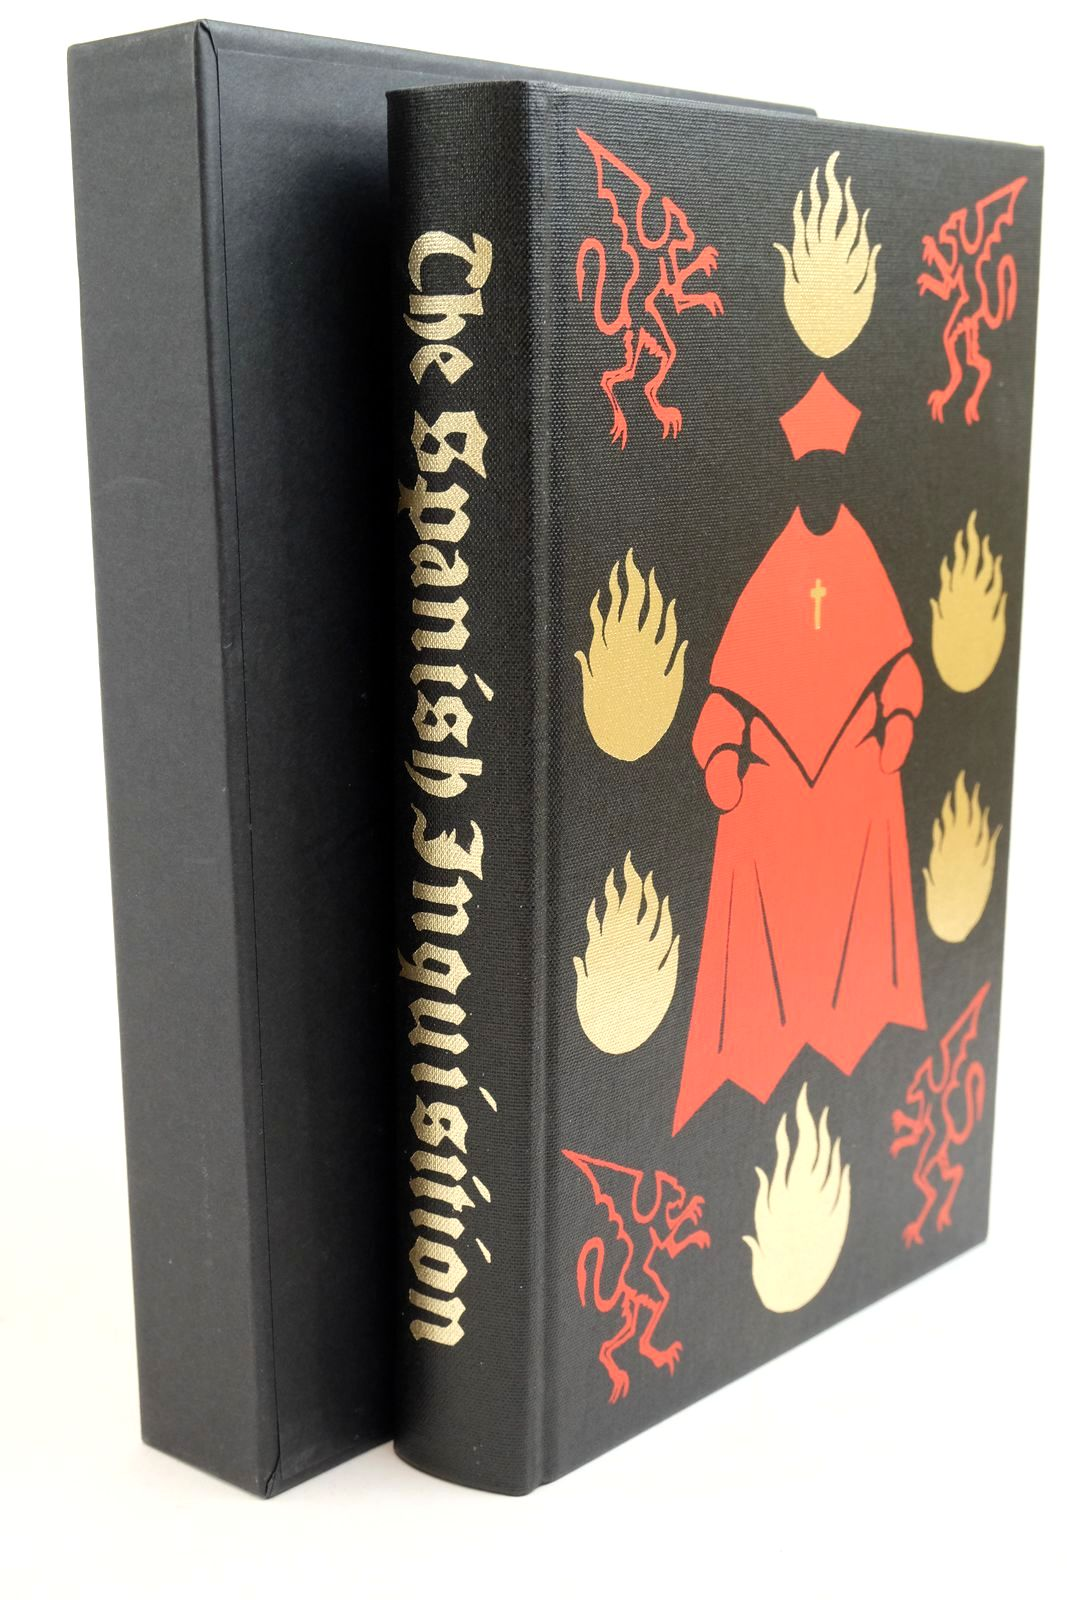 Photo of THE SPANISH INQUISITION written by Kamen, Henry published by Folio Society (STOCK CODE: 1321360)  for sale by Stella & Rose's Books